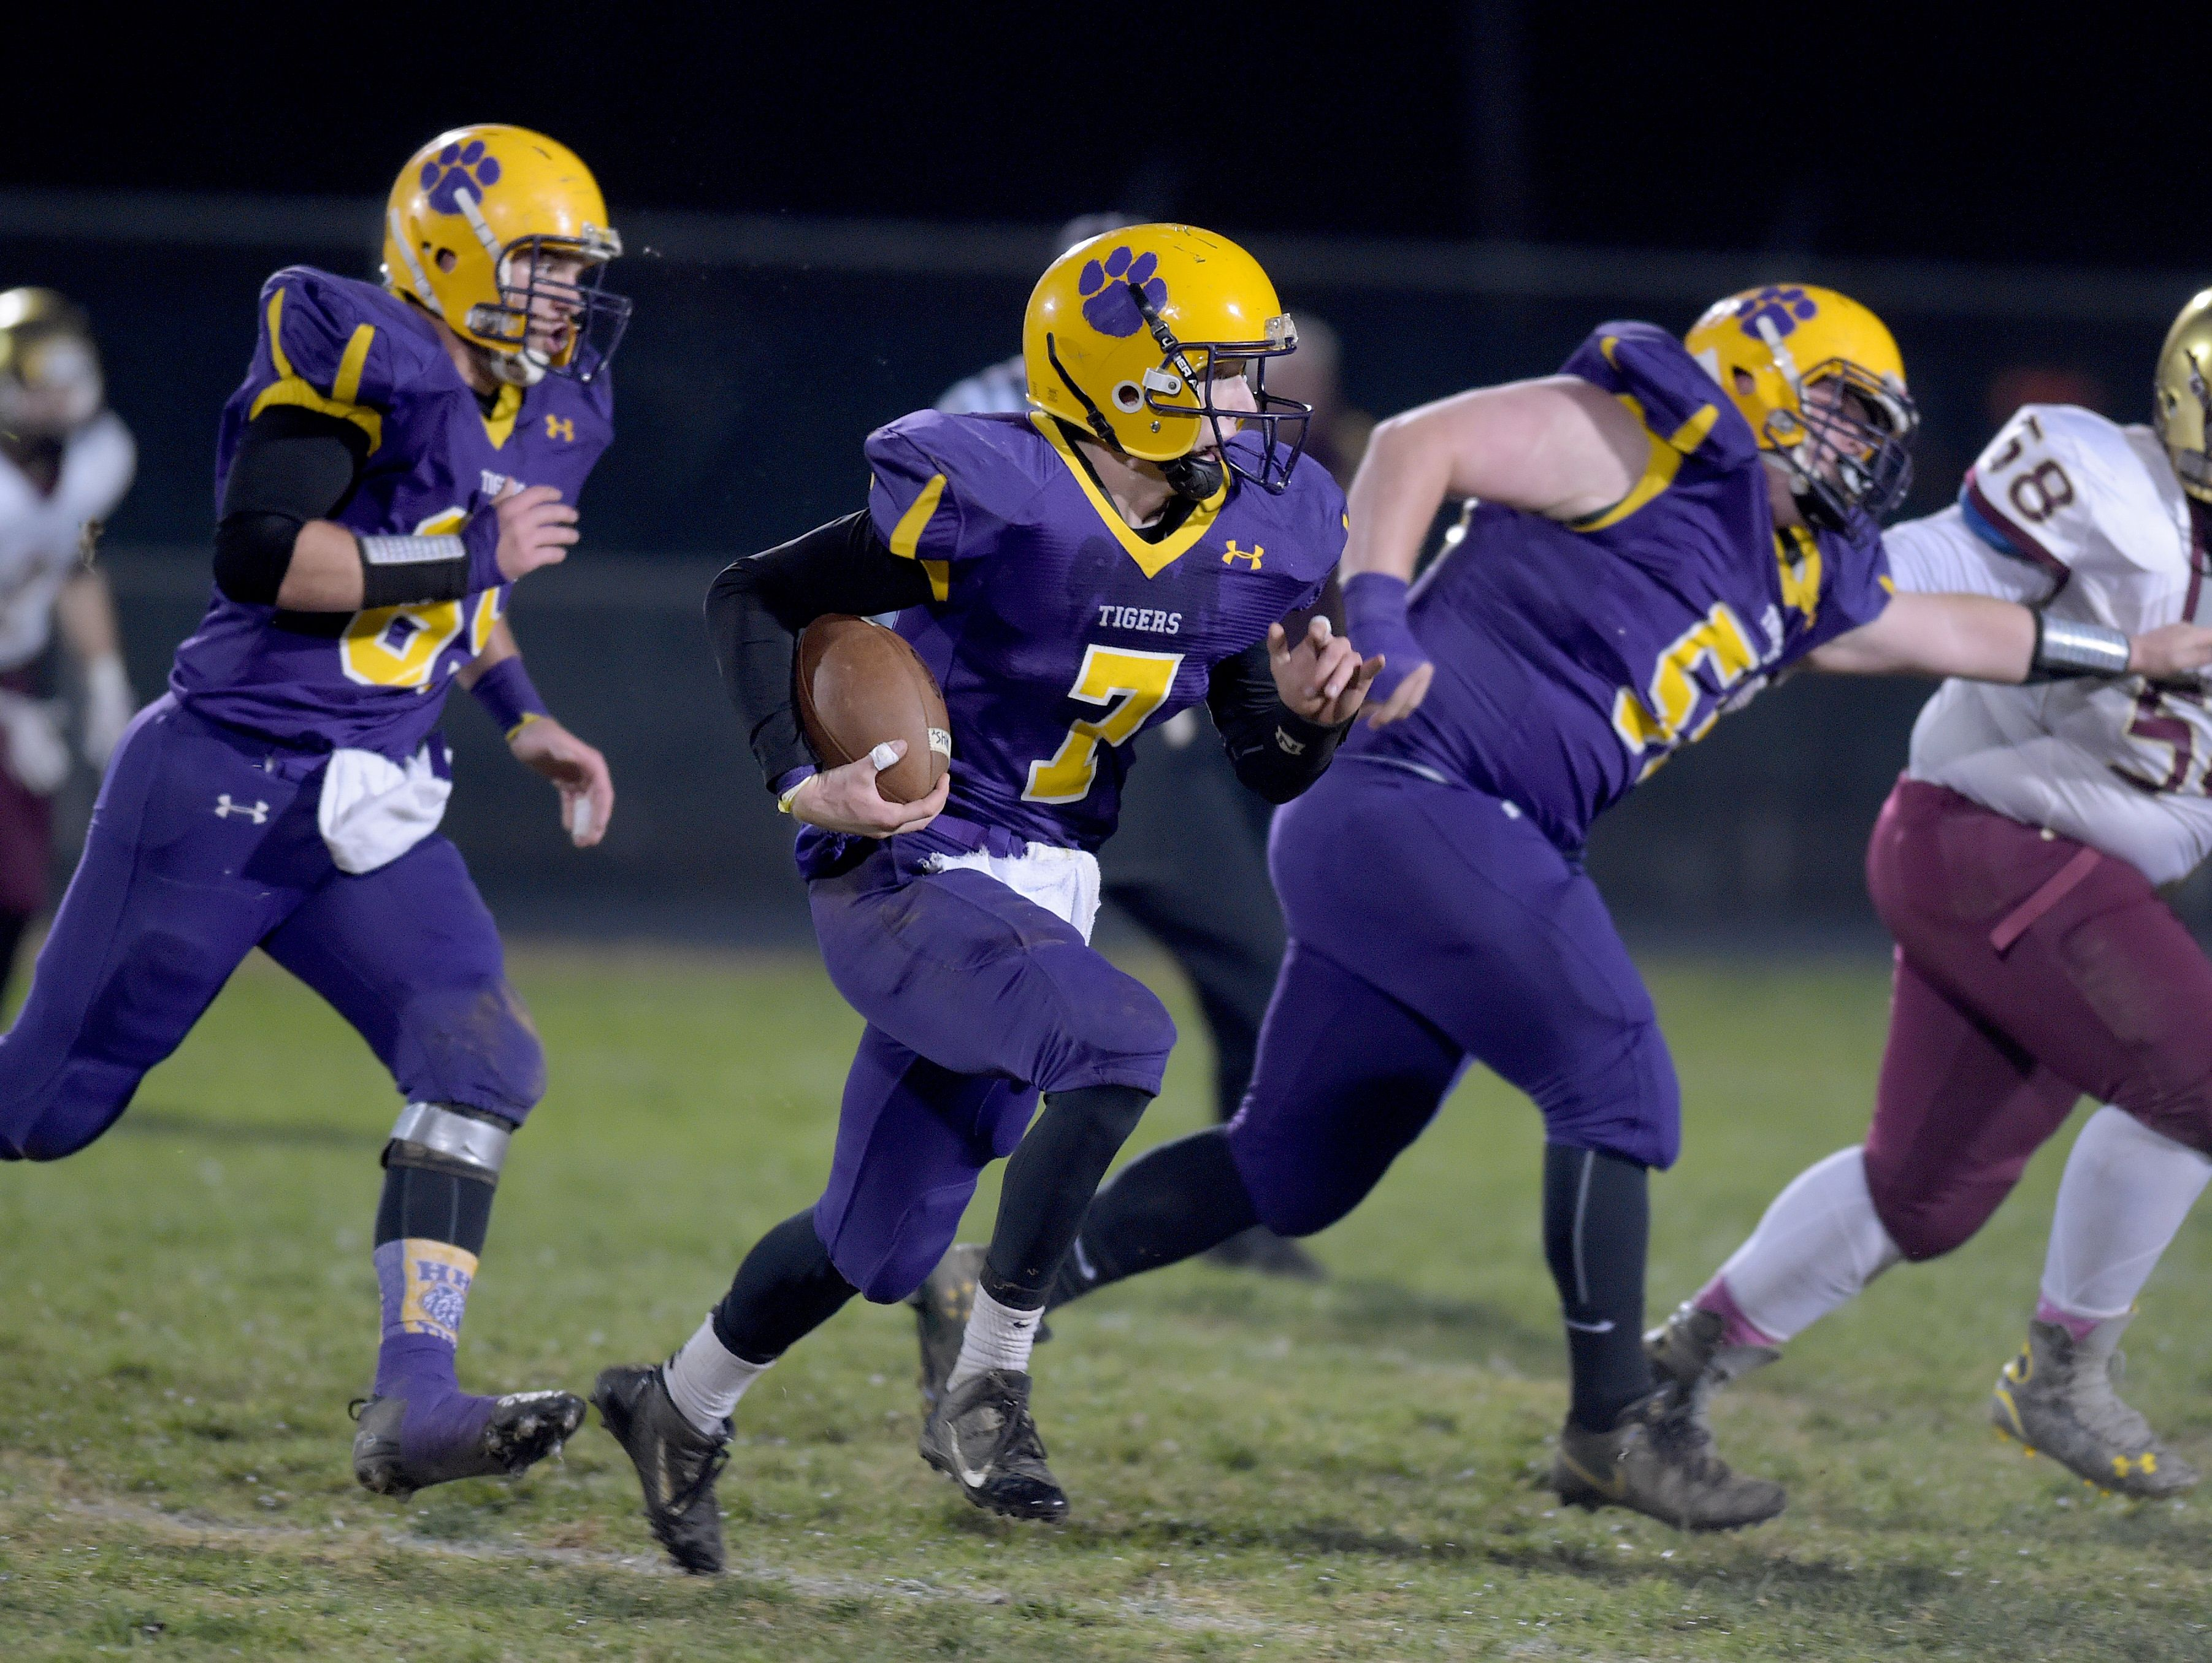 Hagerstown's Owen Golliher runs the ball against Indianapolis Lutheran during a sectional football game Friday, Nov. 4, 2016 in Hagerstown.